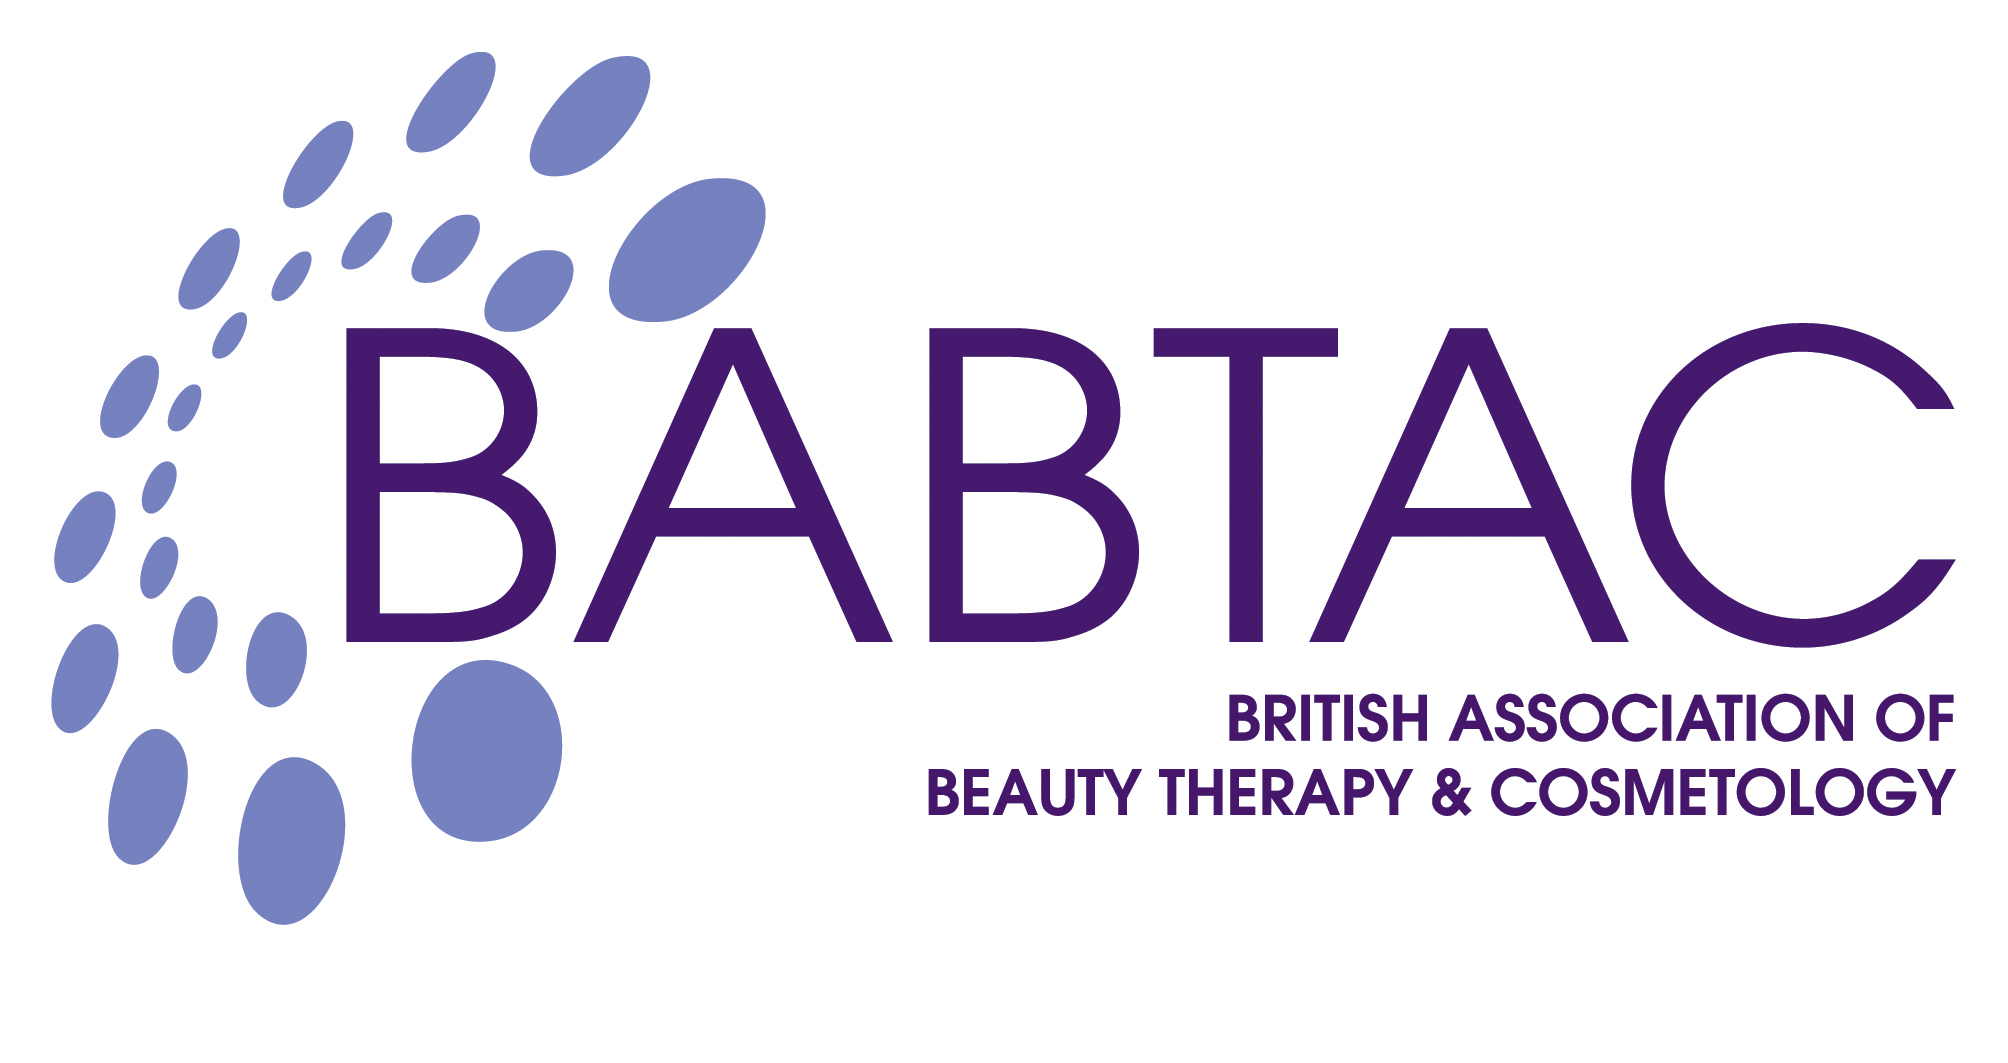 Profile picture for British Association of Beauty Therapy & Cosmetology - BABTAC